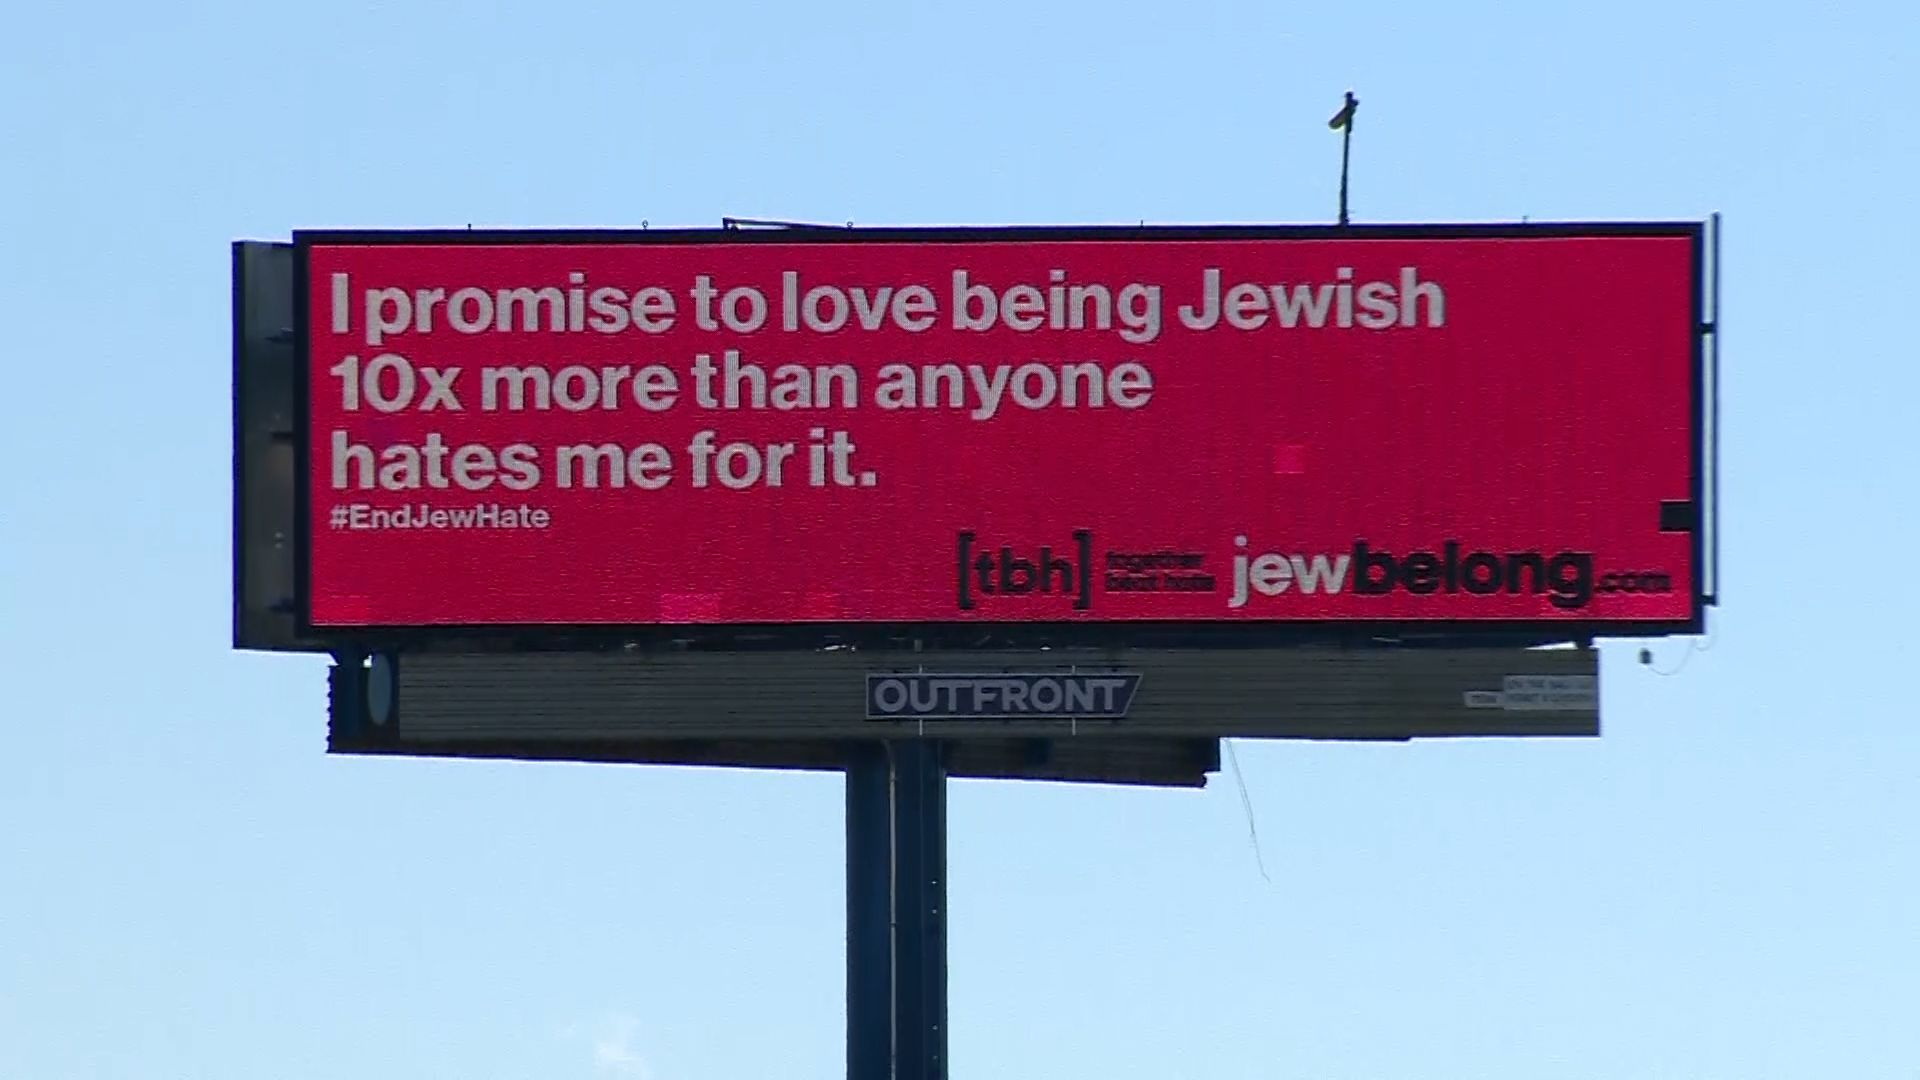 Bright pink billboards calling out antisemitism spotted around Greater Boston area